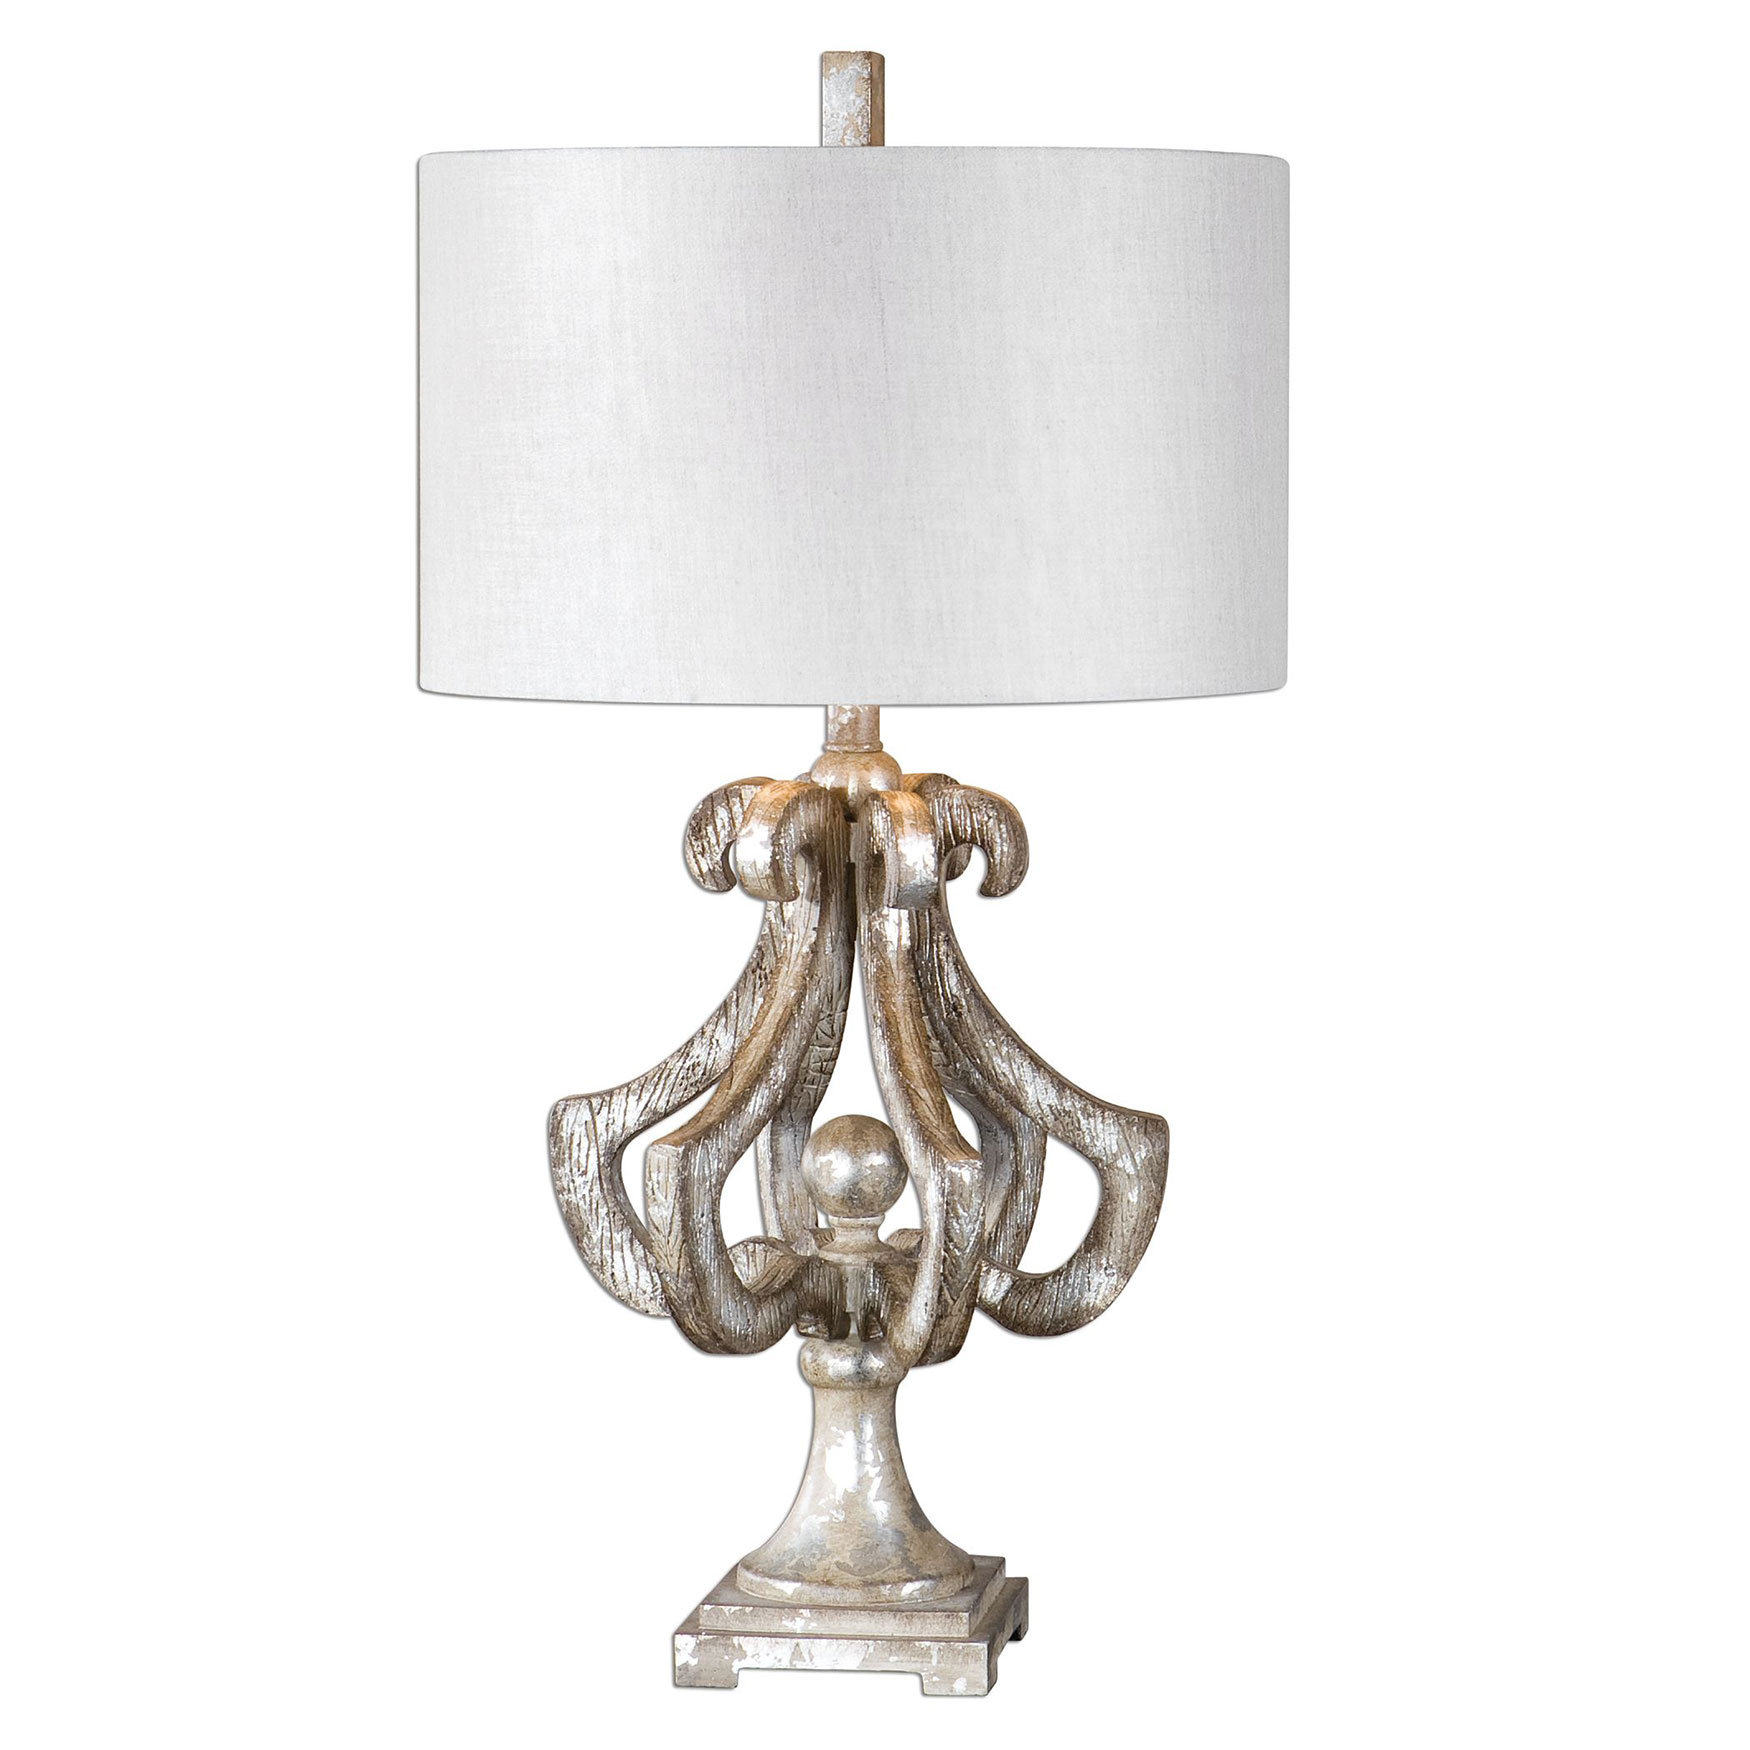 Vinadio Distressed Silver Table Lamp, SILVER